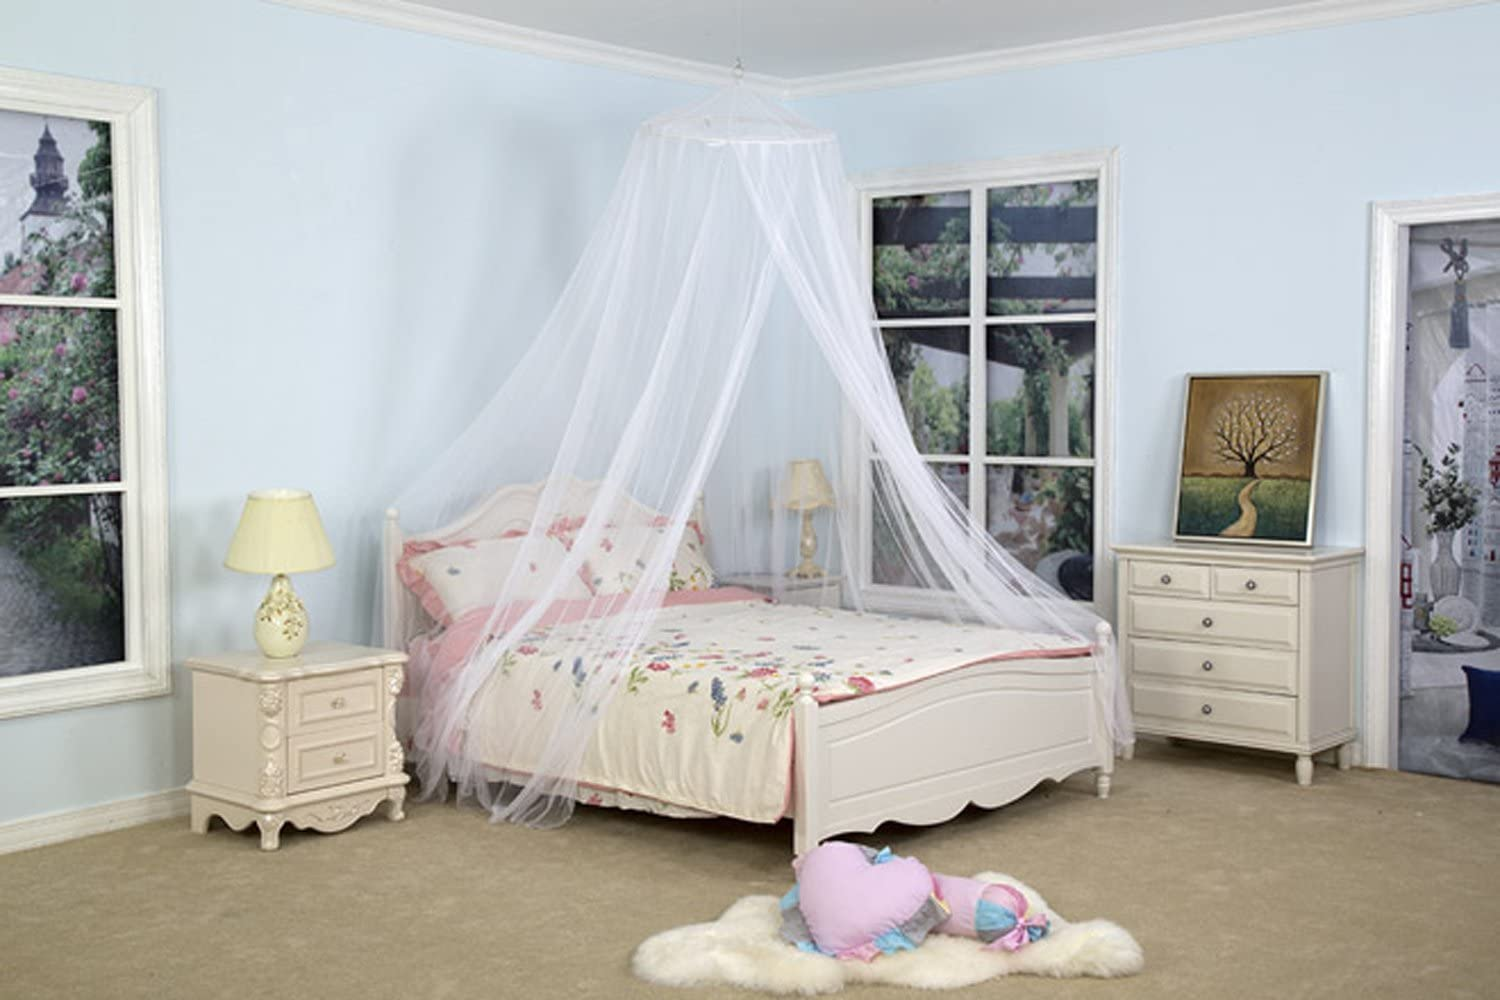 DreamMa White Round Bed Canopy Mosquito Net